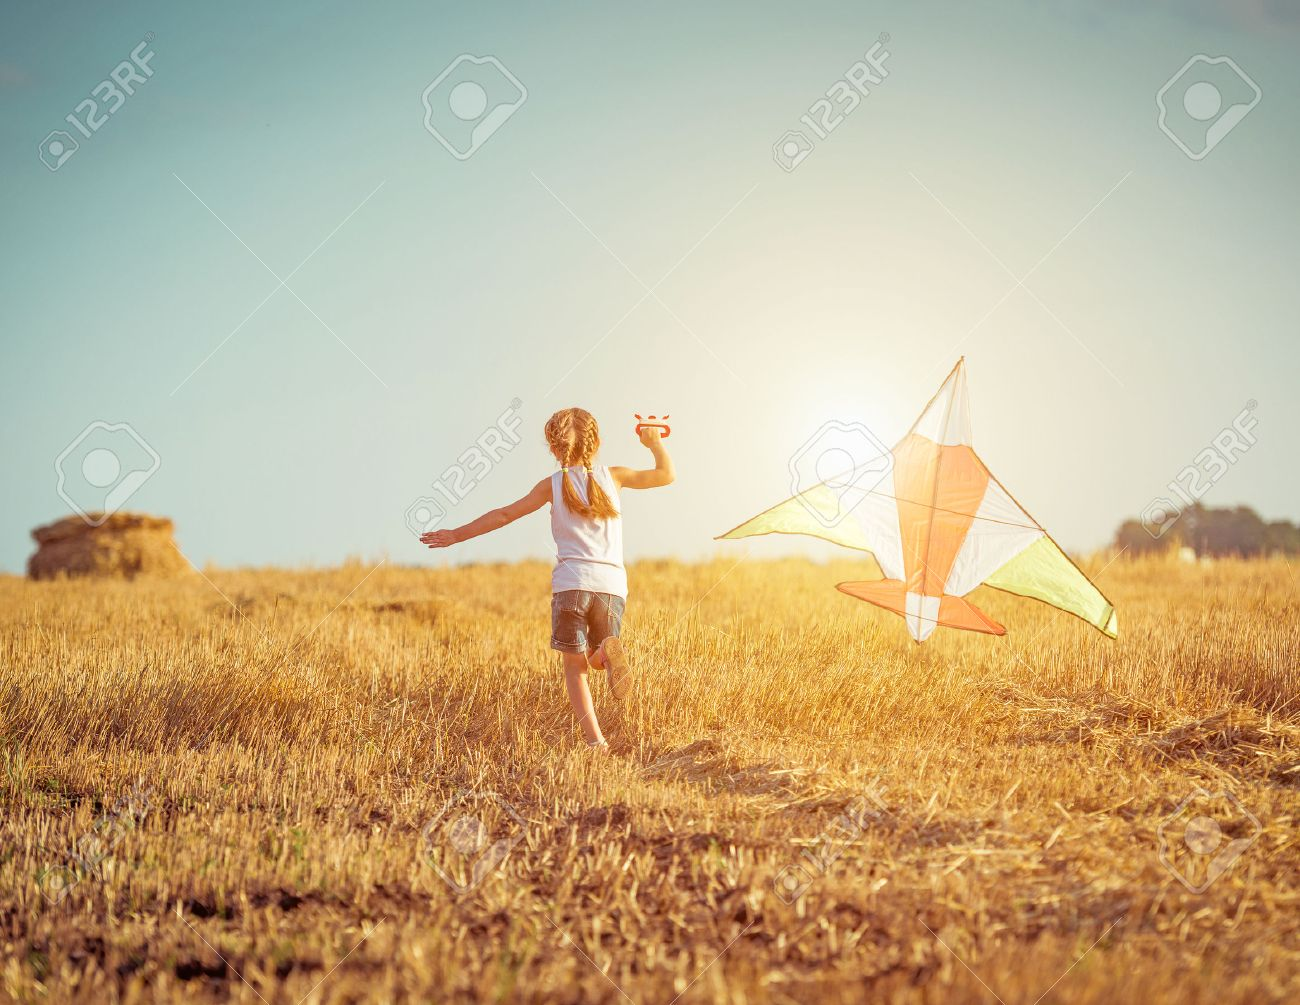 happy little girl with a kite in a field - 33466957